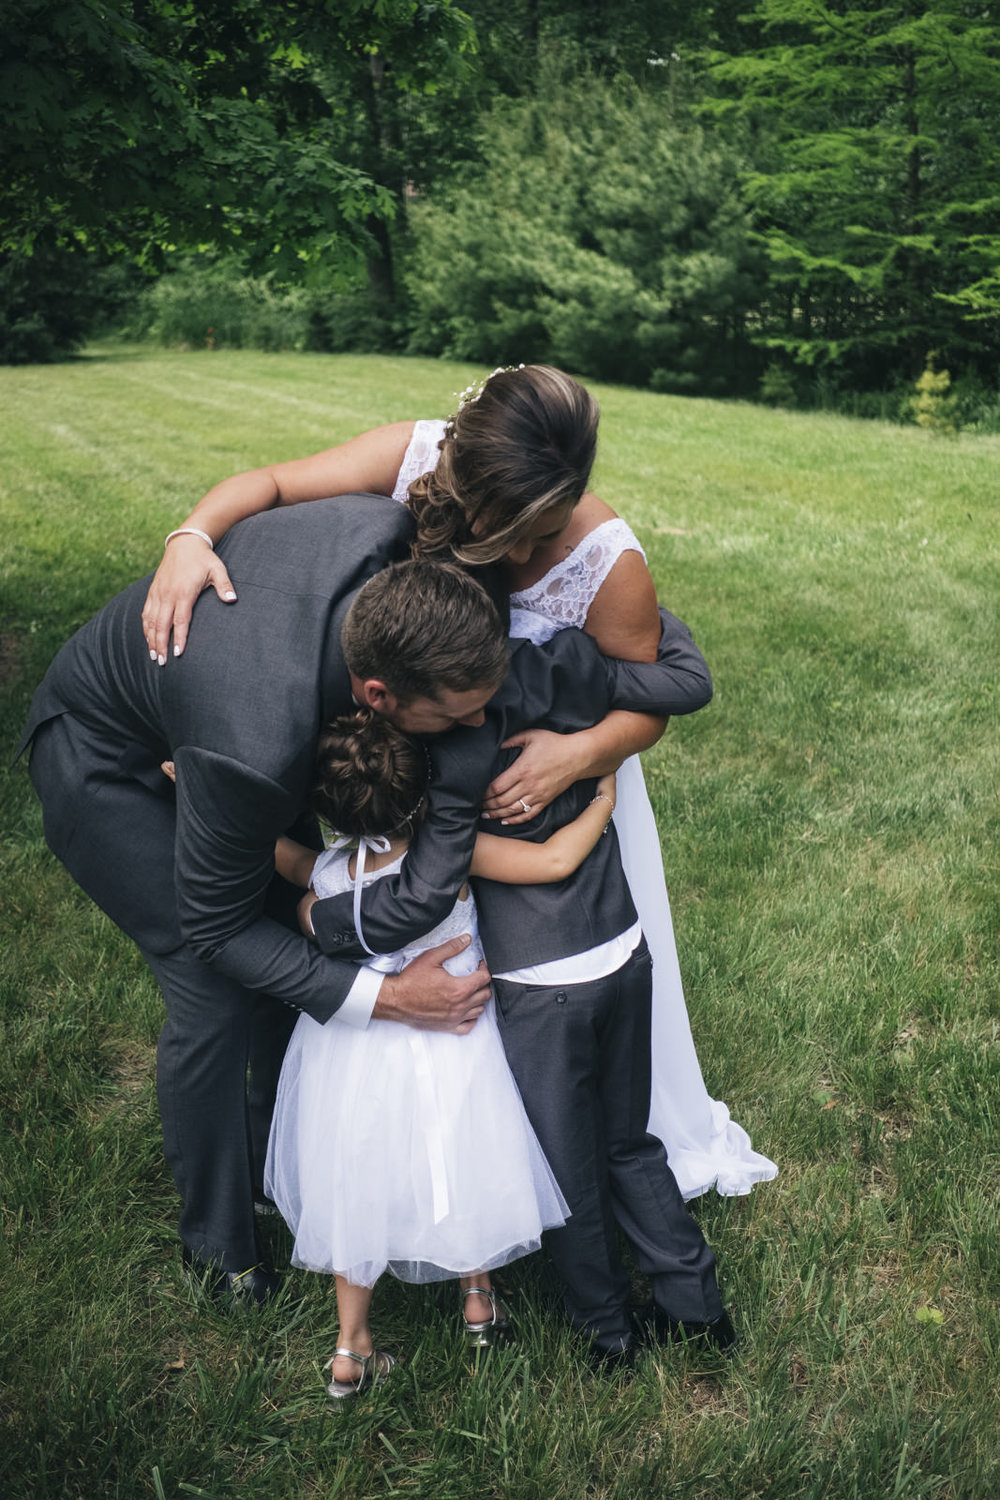 Bride and groom hug children on wedding day in Whitehouse, Ohio.